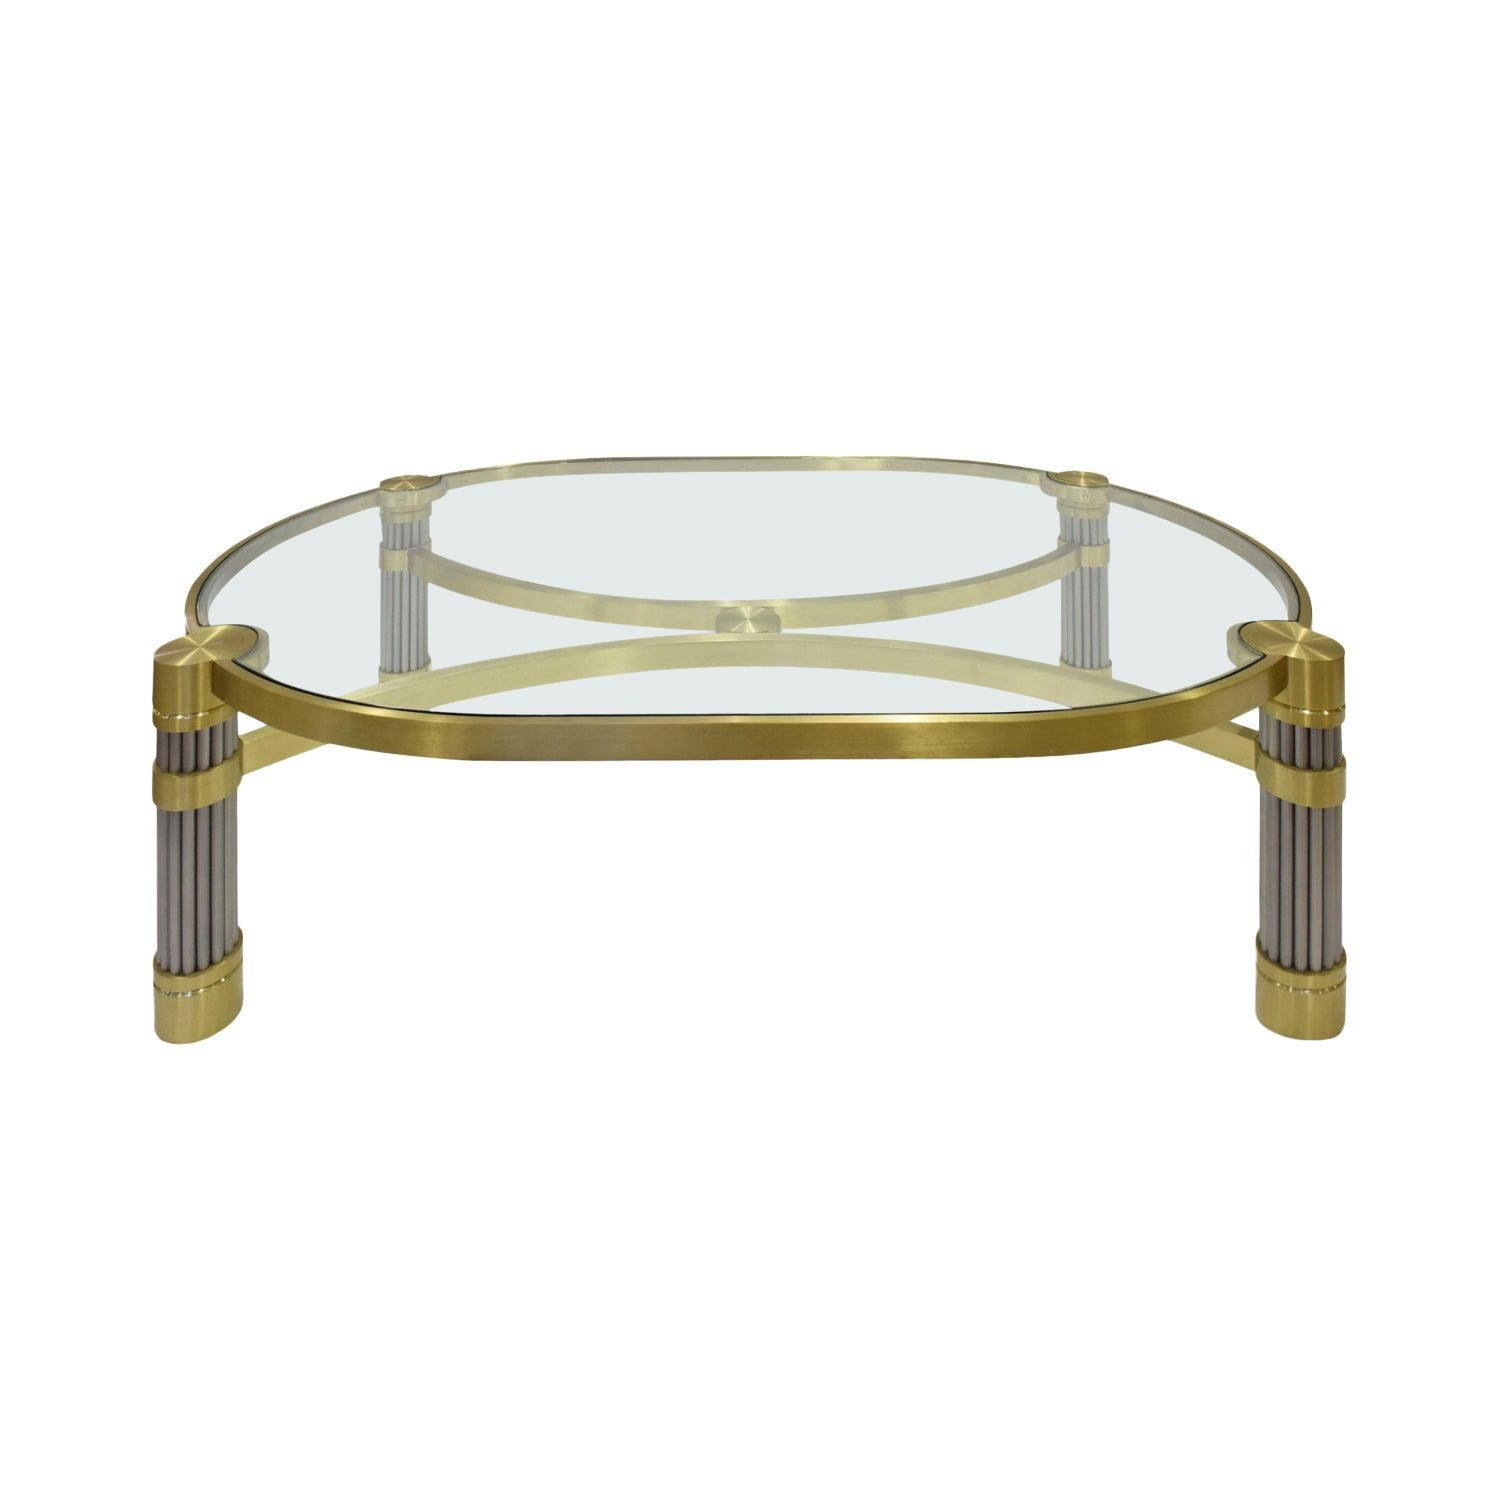 Ron Seff Large Coffee Table in Brushed Stainless Steel and Brass, 1980s